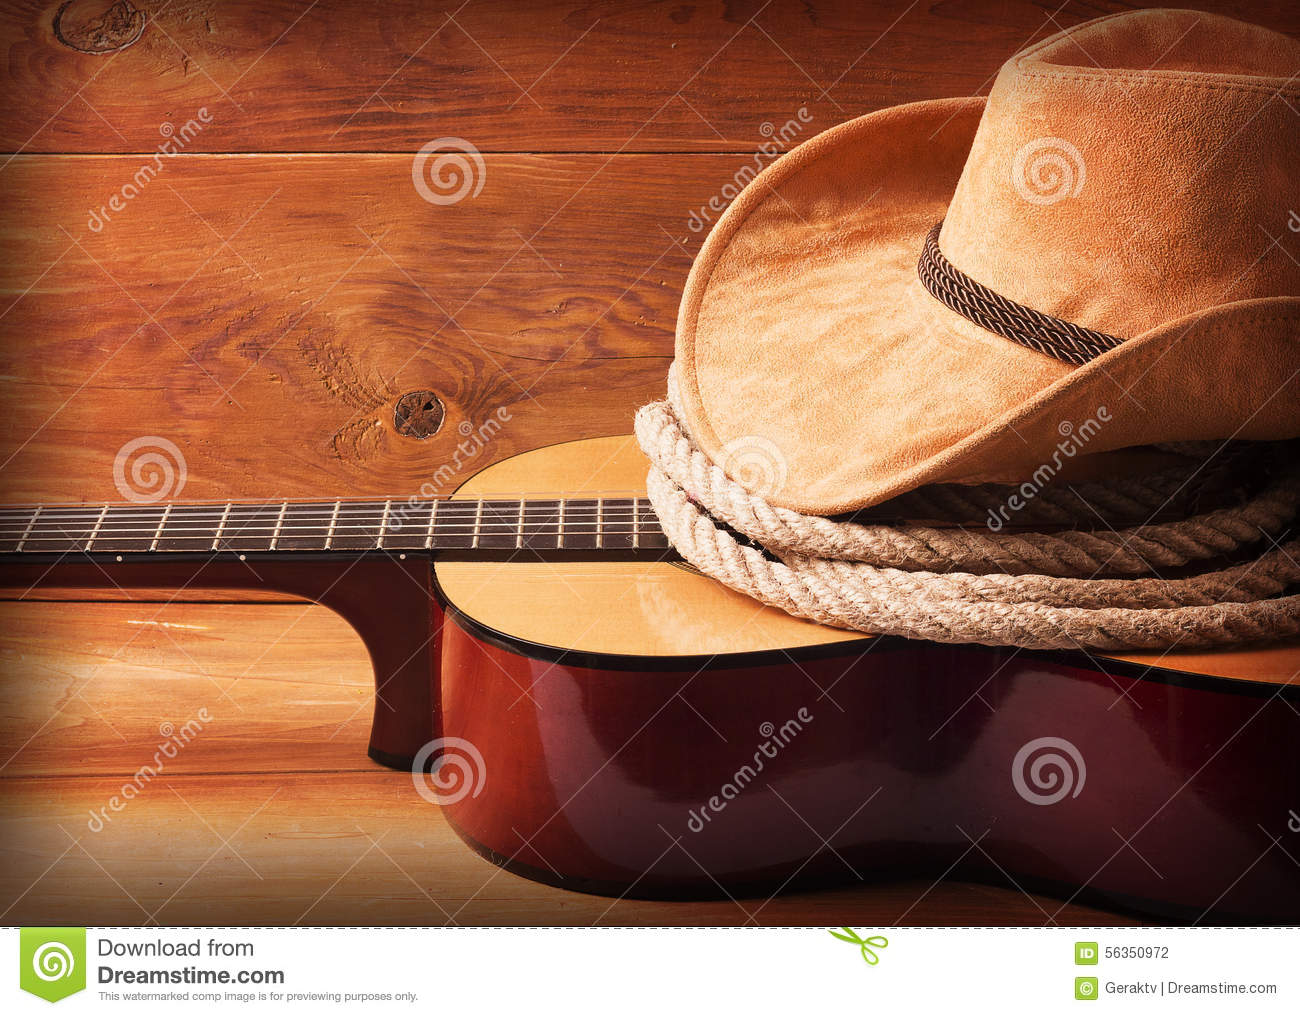 Country Music Picture With Guitar And Cowboy Hat Stock Photo - Image ...